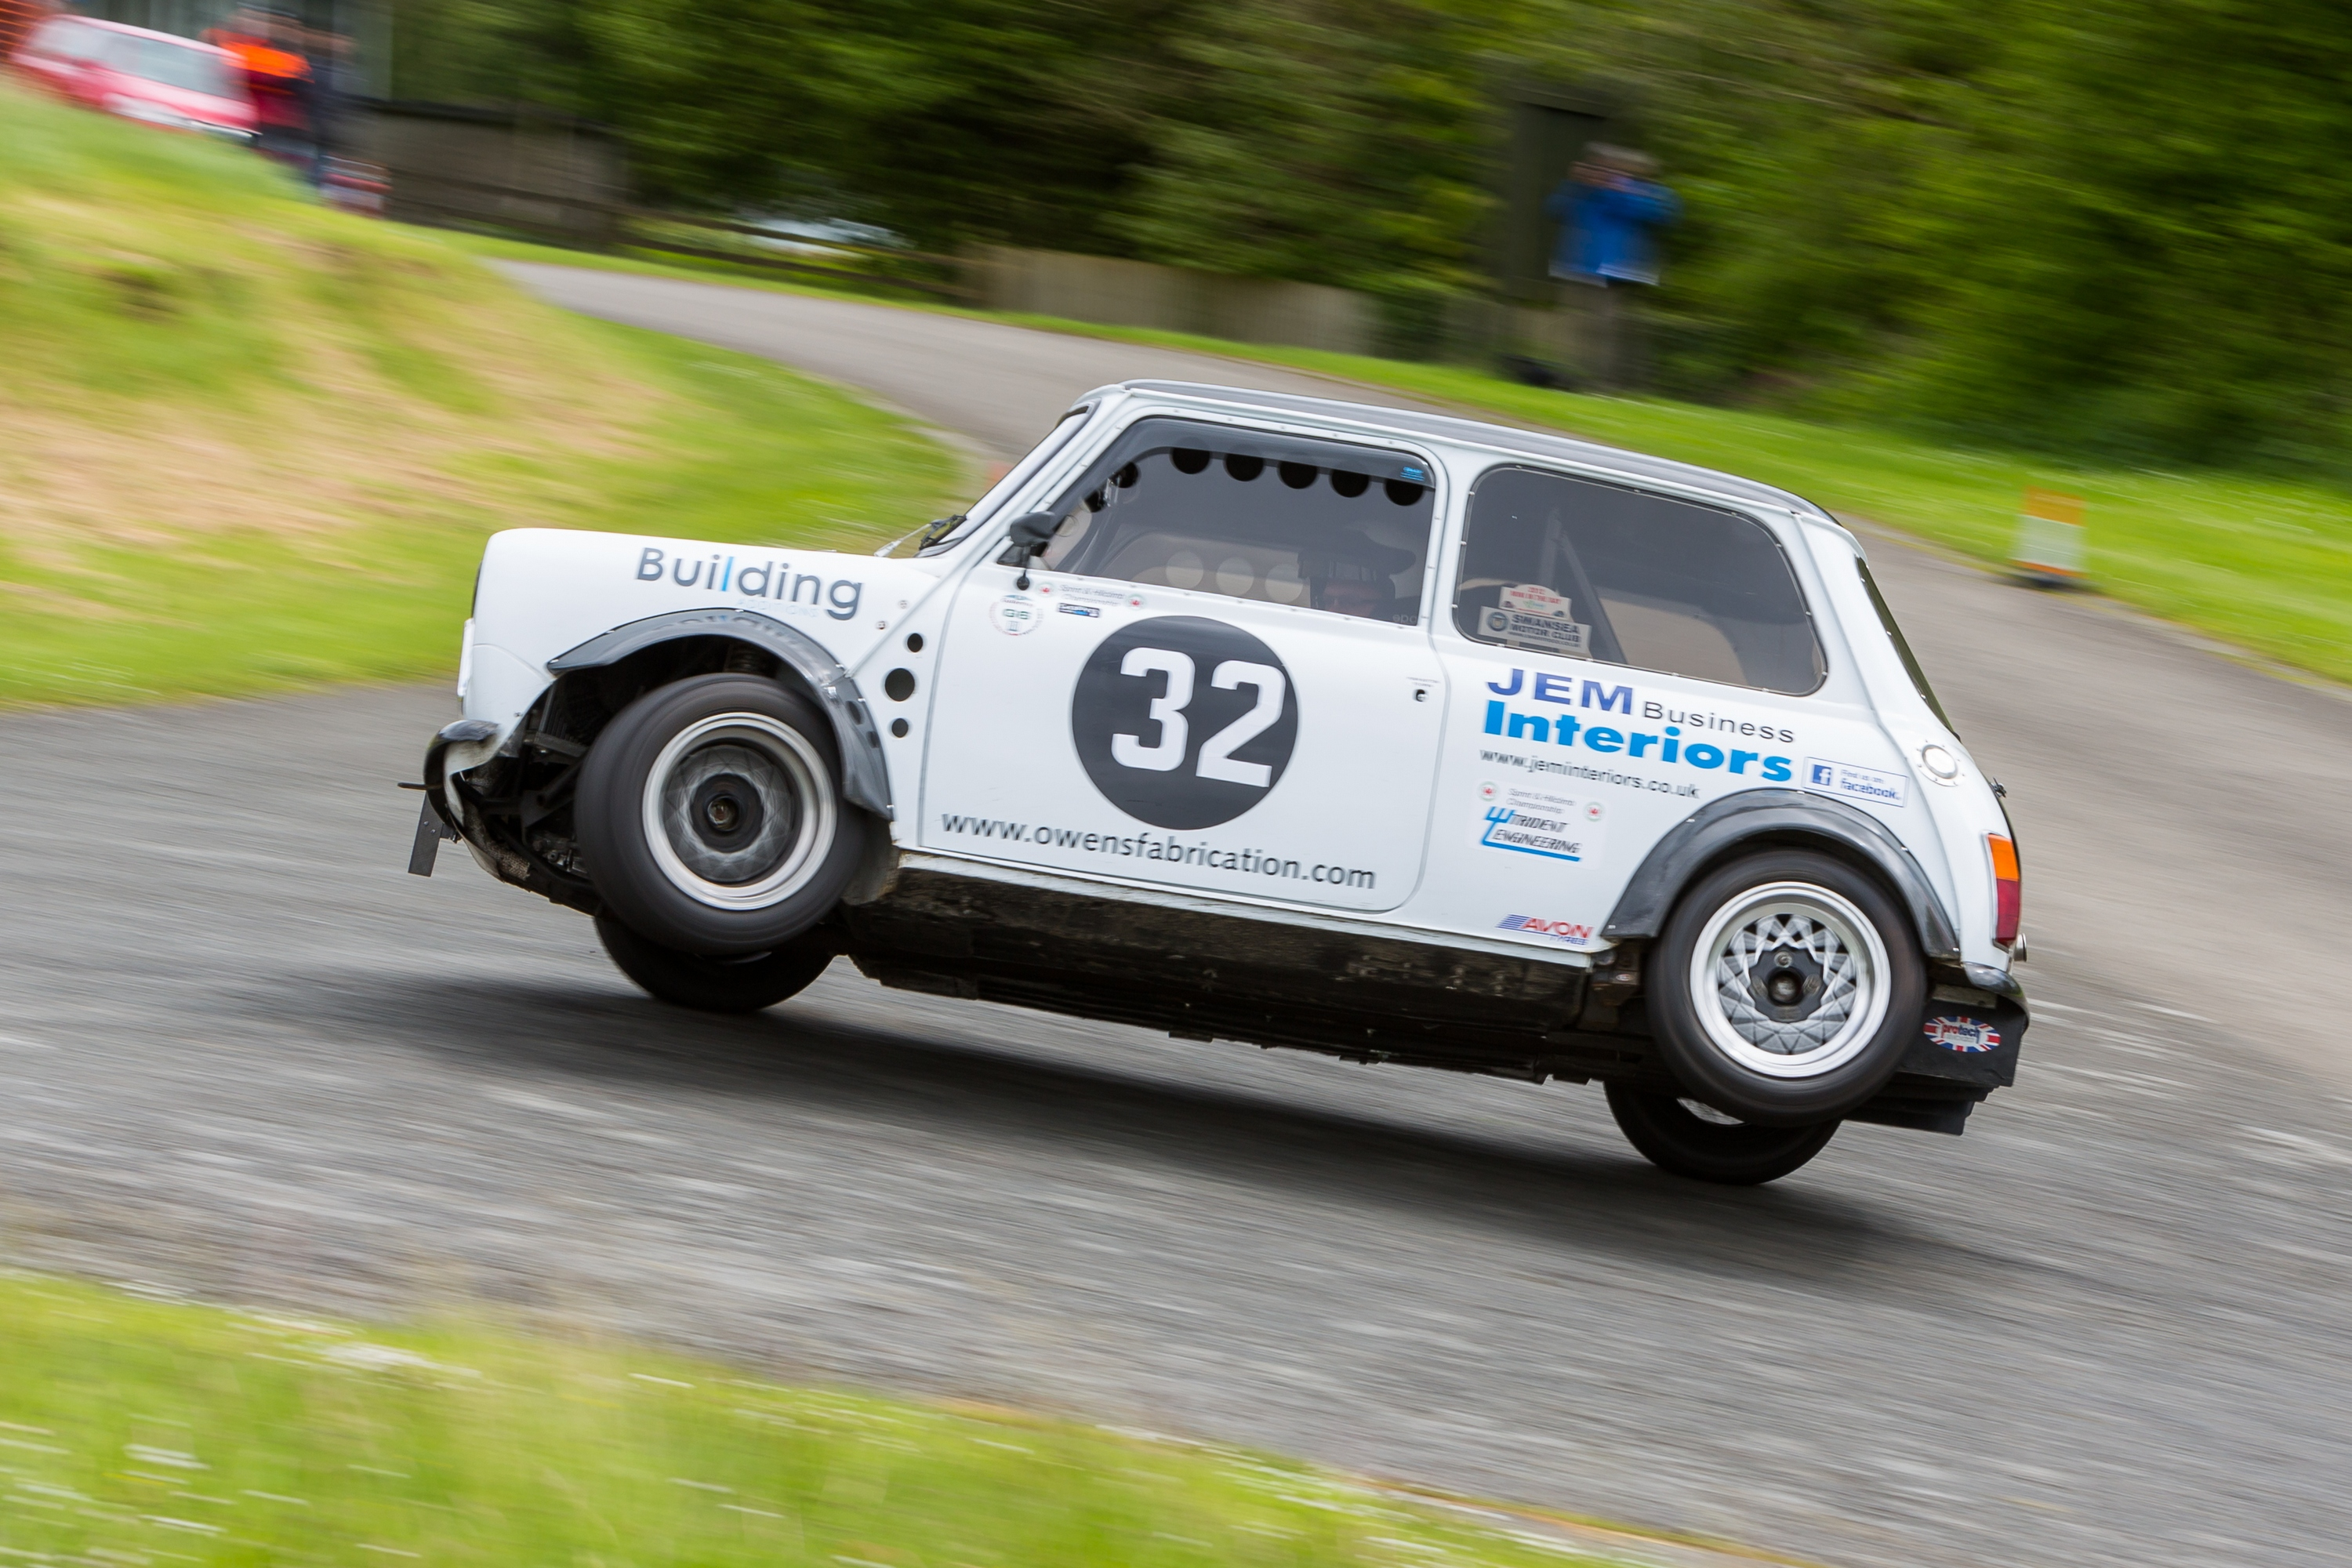 mini coop takes a corner on two wheels sponsored by Building Additions